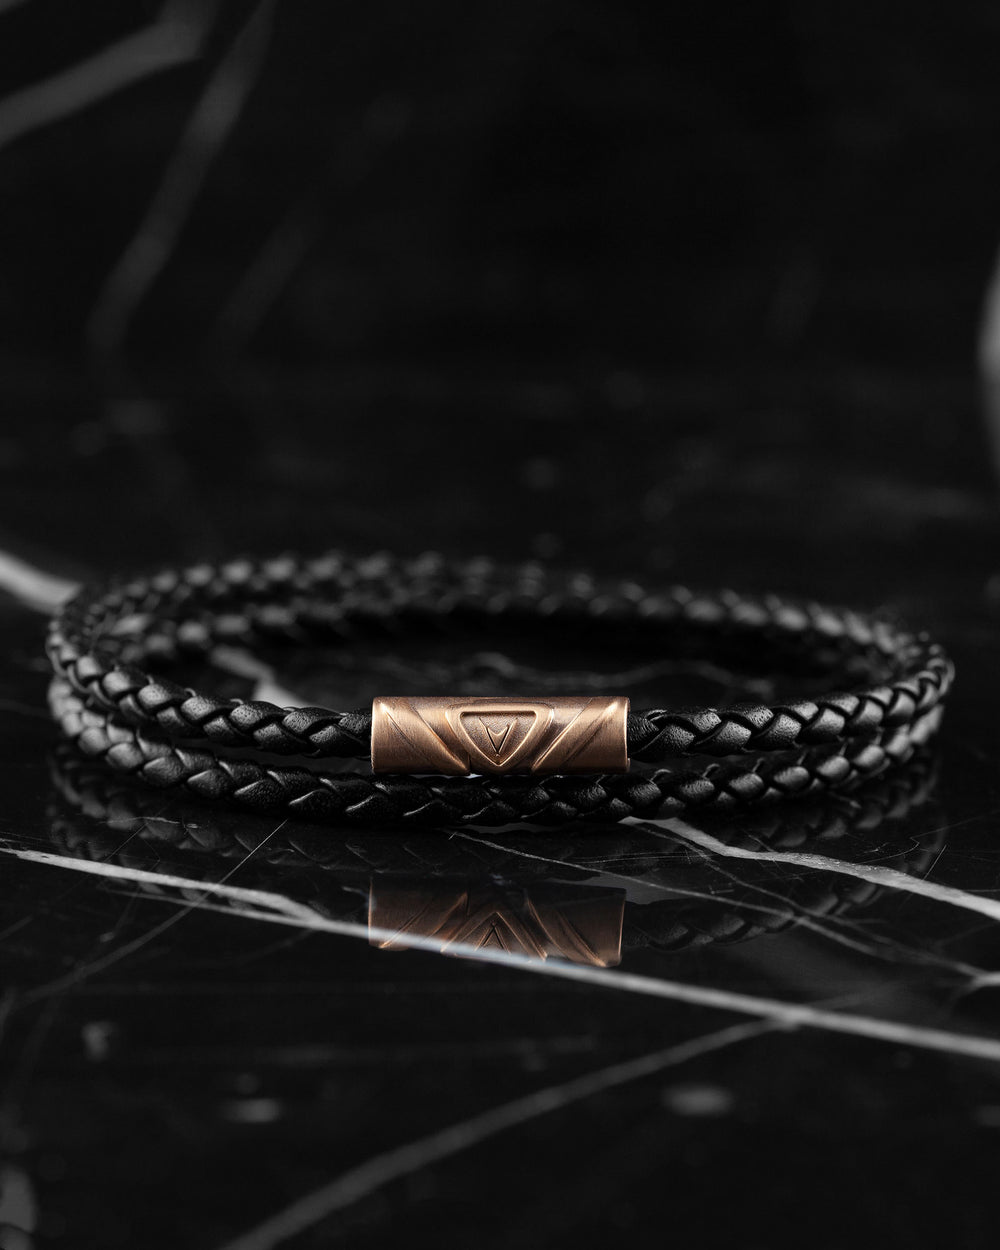 Men's Luxury Black Italian Leather Double Braided Bracelet Strap with a Rose Gold Clasp